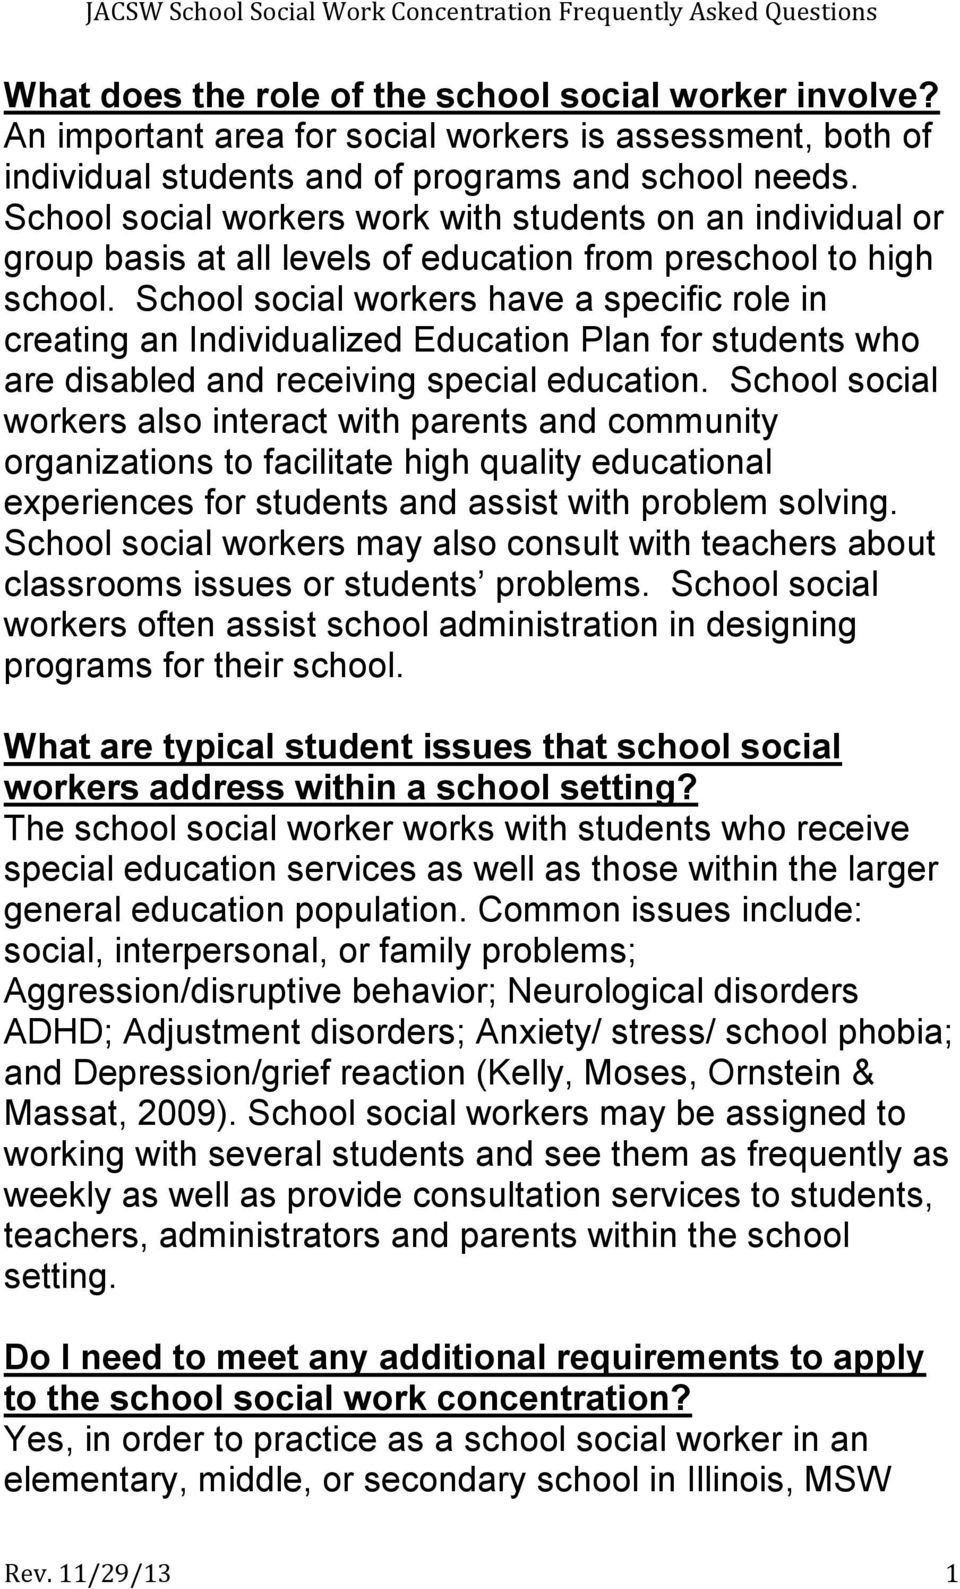 School social workers have a specific role in creating an Individualized Education Plan for students who are disabled and receiving special education.